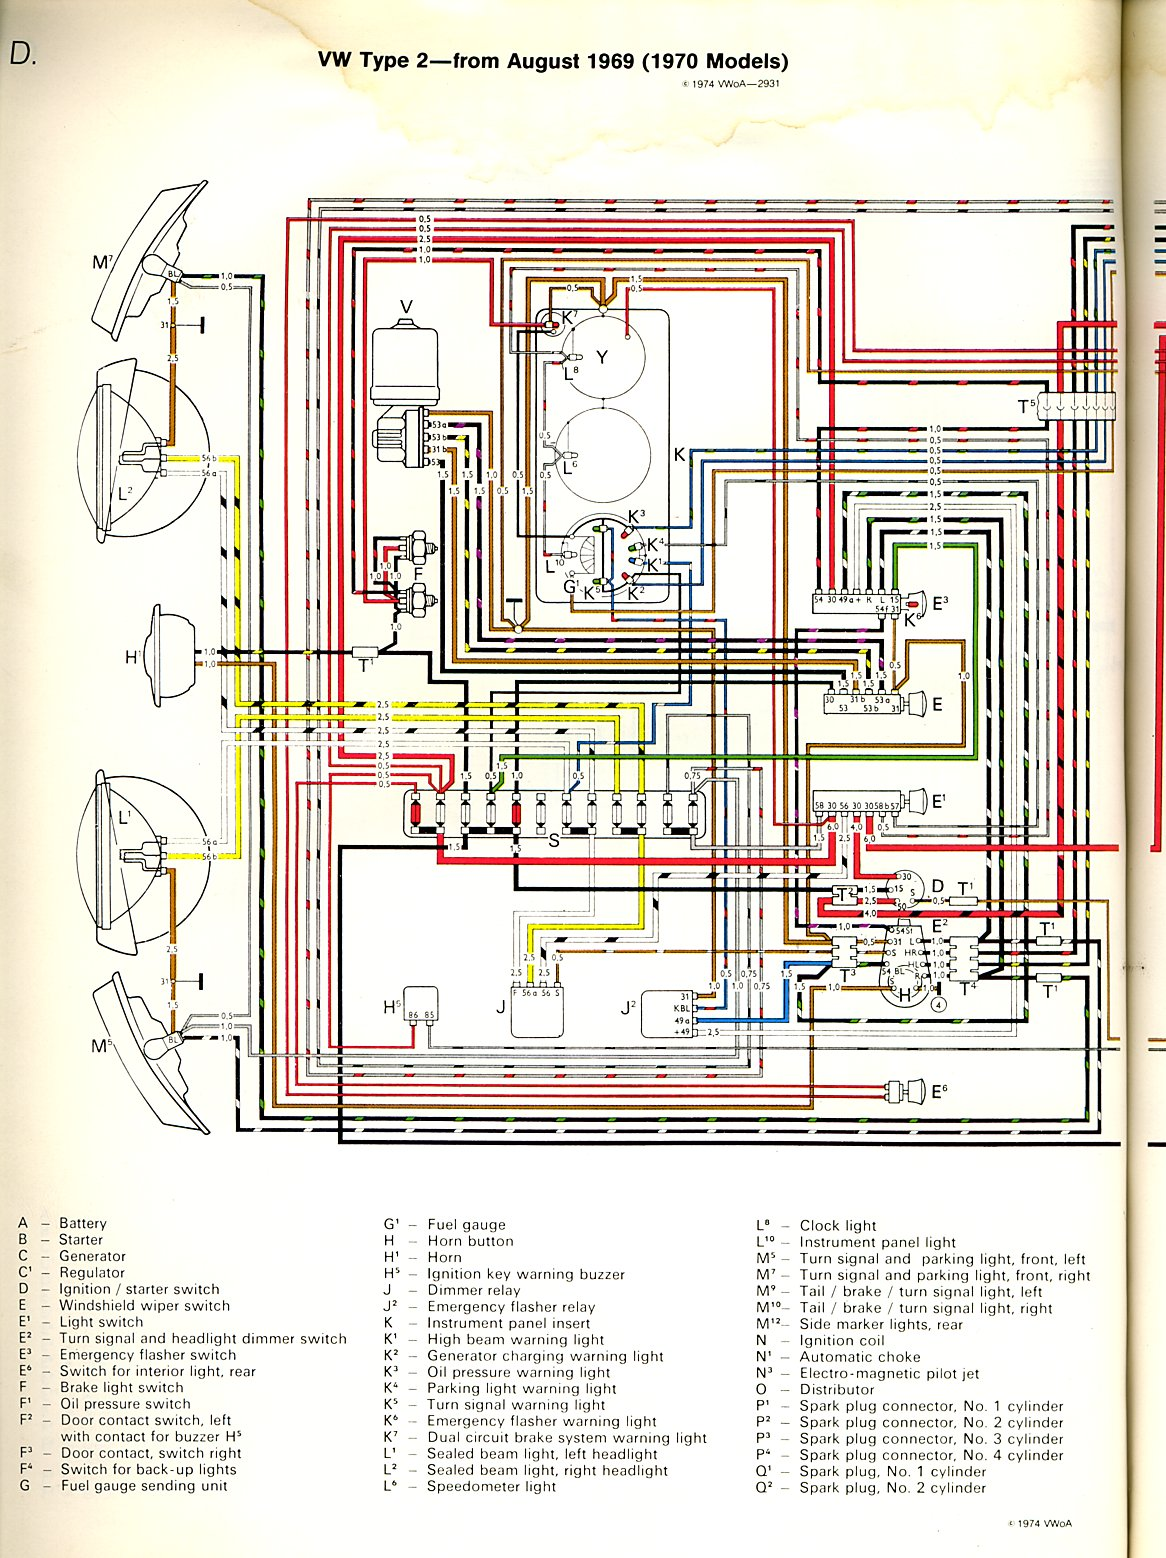 Type 2 Wiring Diagrams 92 Chevy Truck Alternator Free Download Diagram